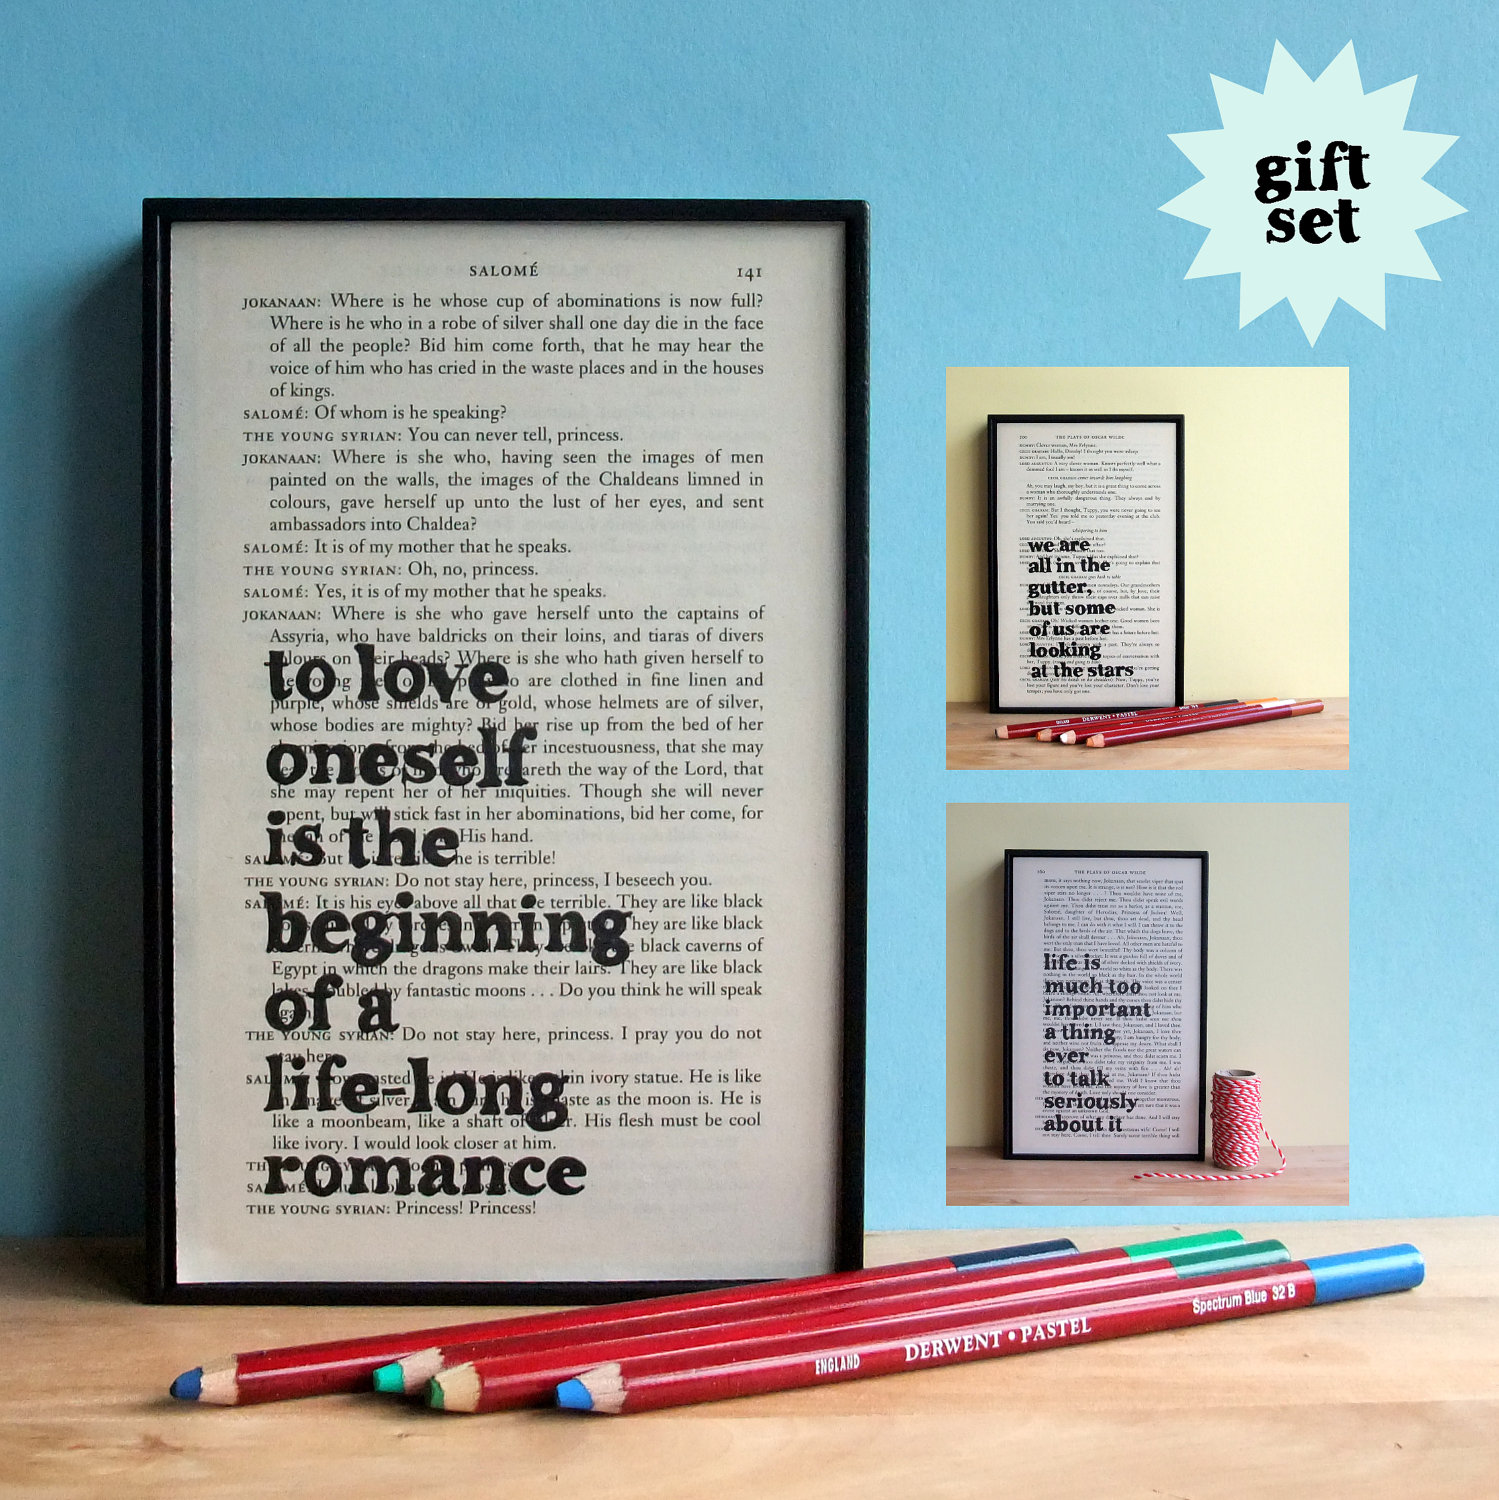 Inspirational Quotes From Books Oscar Wilde Inspirational Quote Gift Set Framed Artwork On